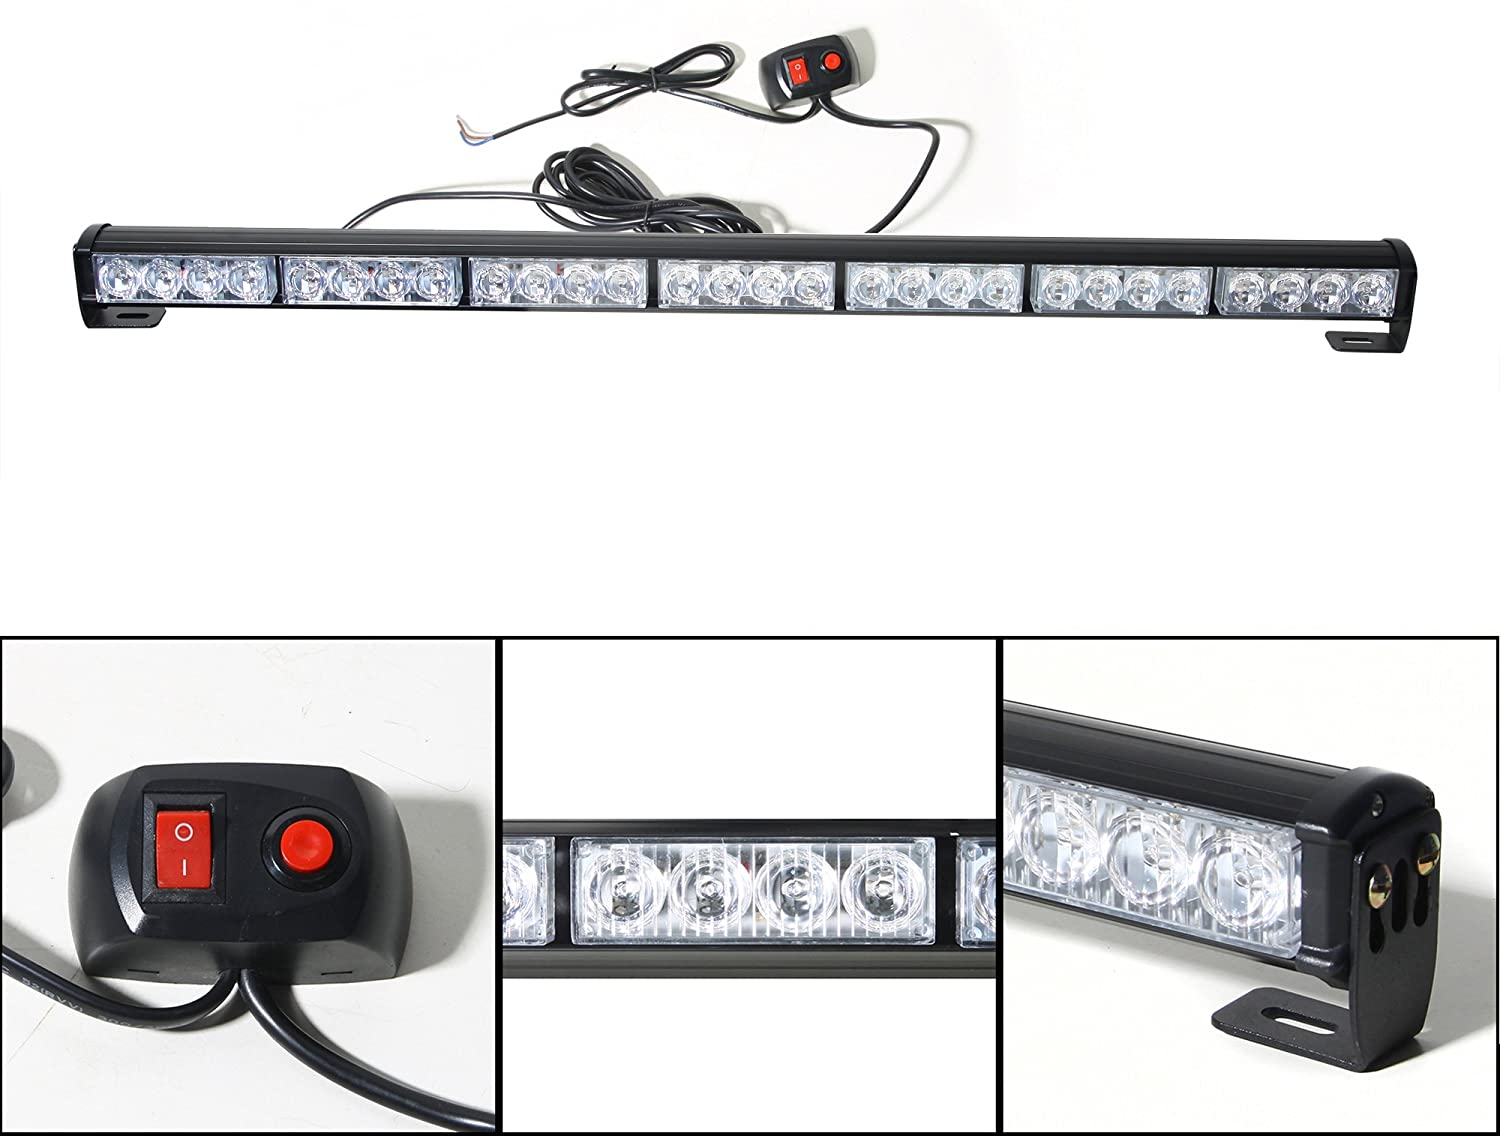 DIYAH 28 LED 31.5 Emergency Warning Traffic Advisor Vehicle Strobe Light Bar Amber//White